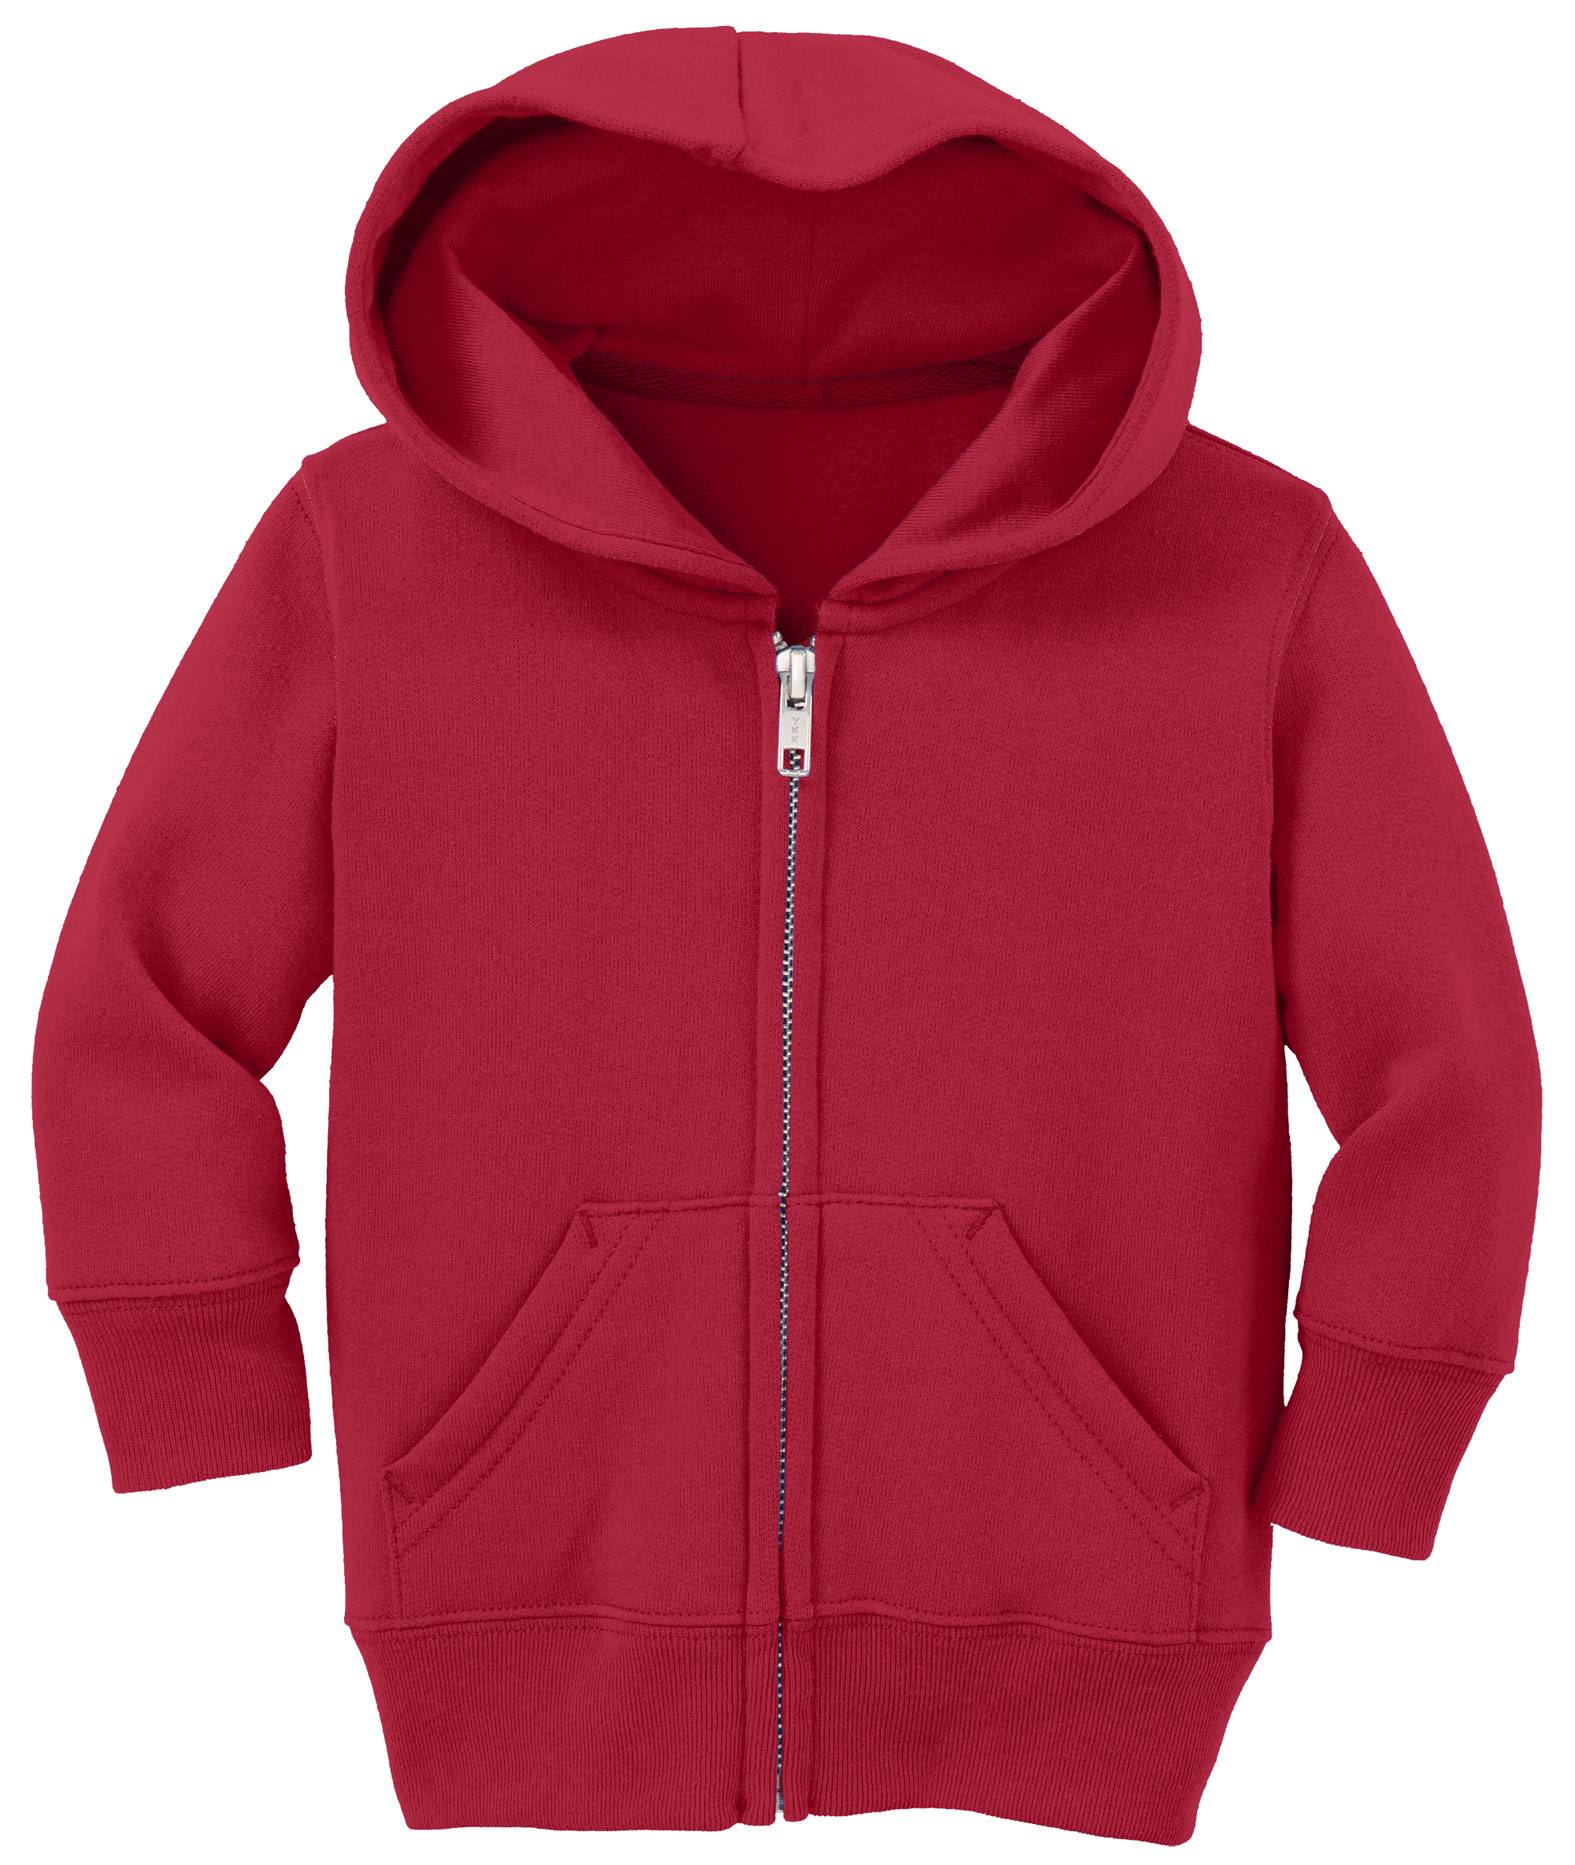 Infant Full Zip Hooded Sweatshirt